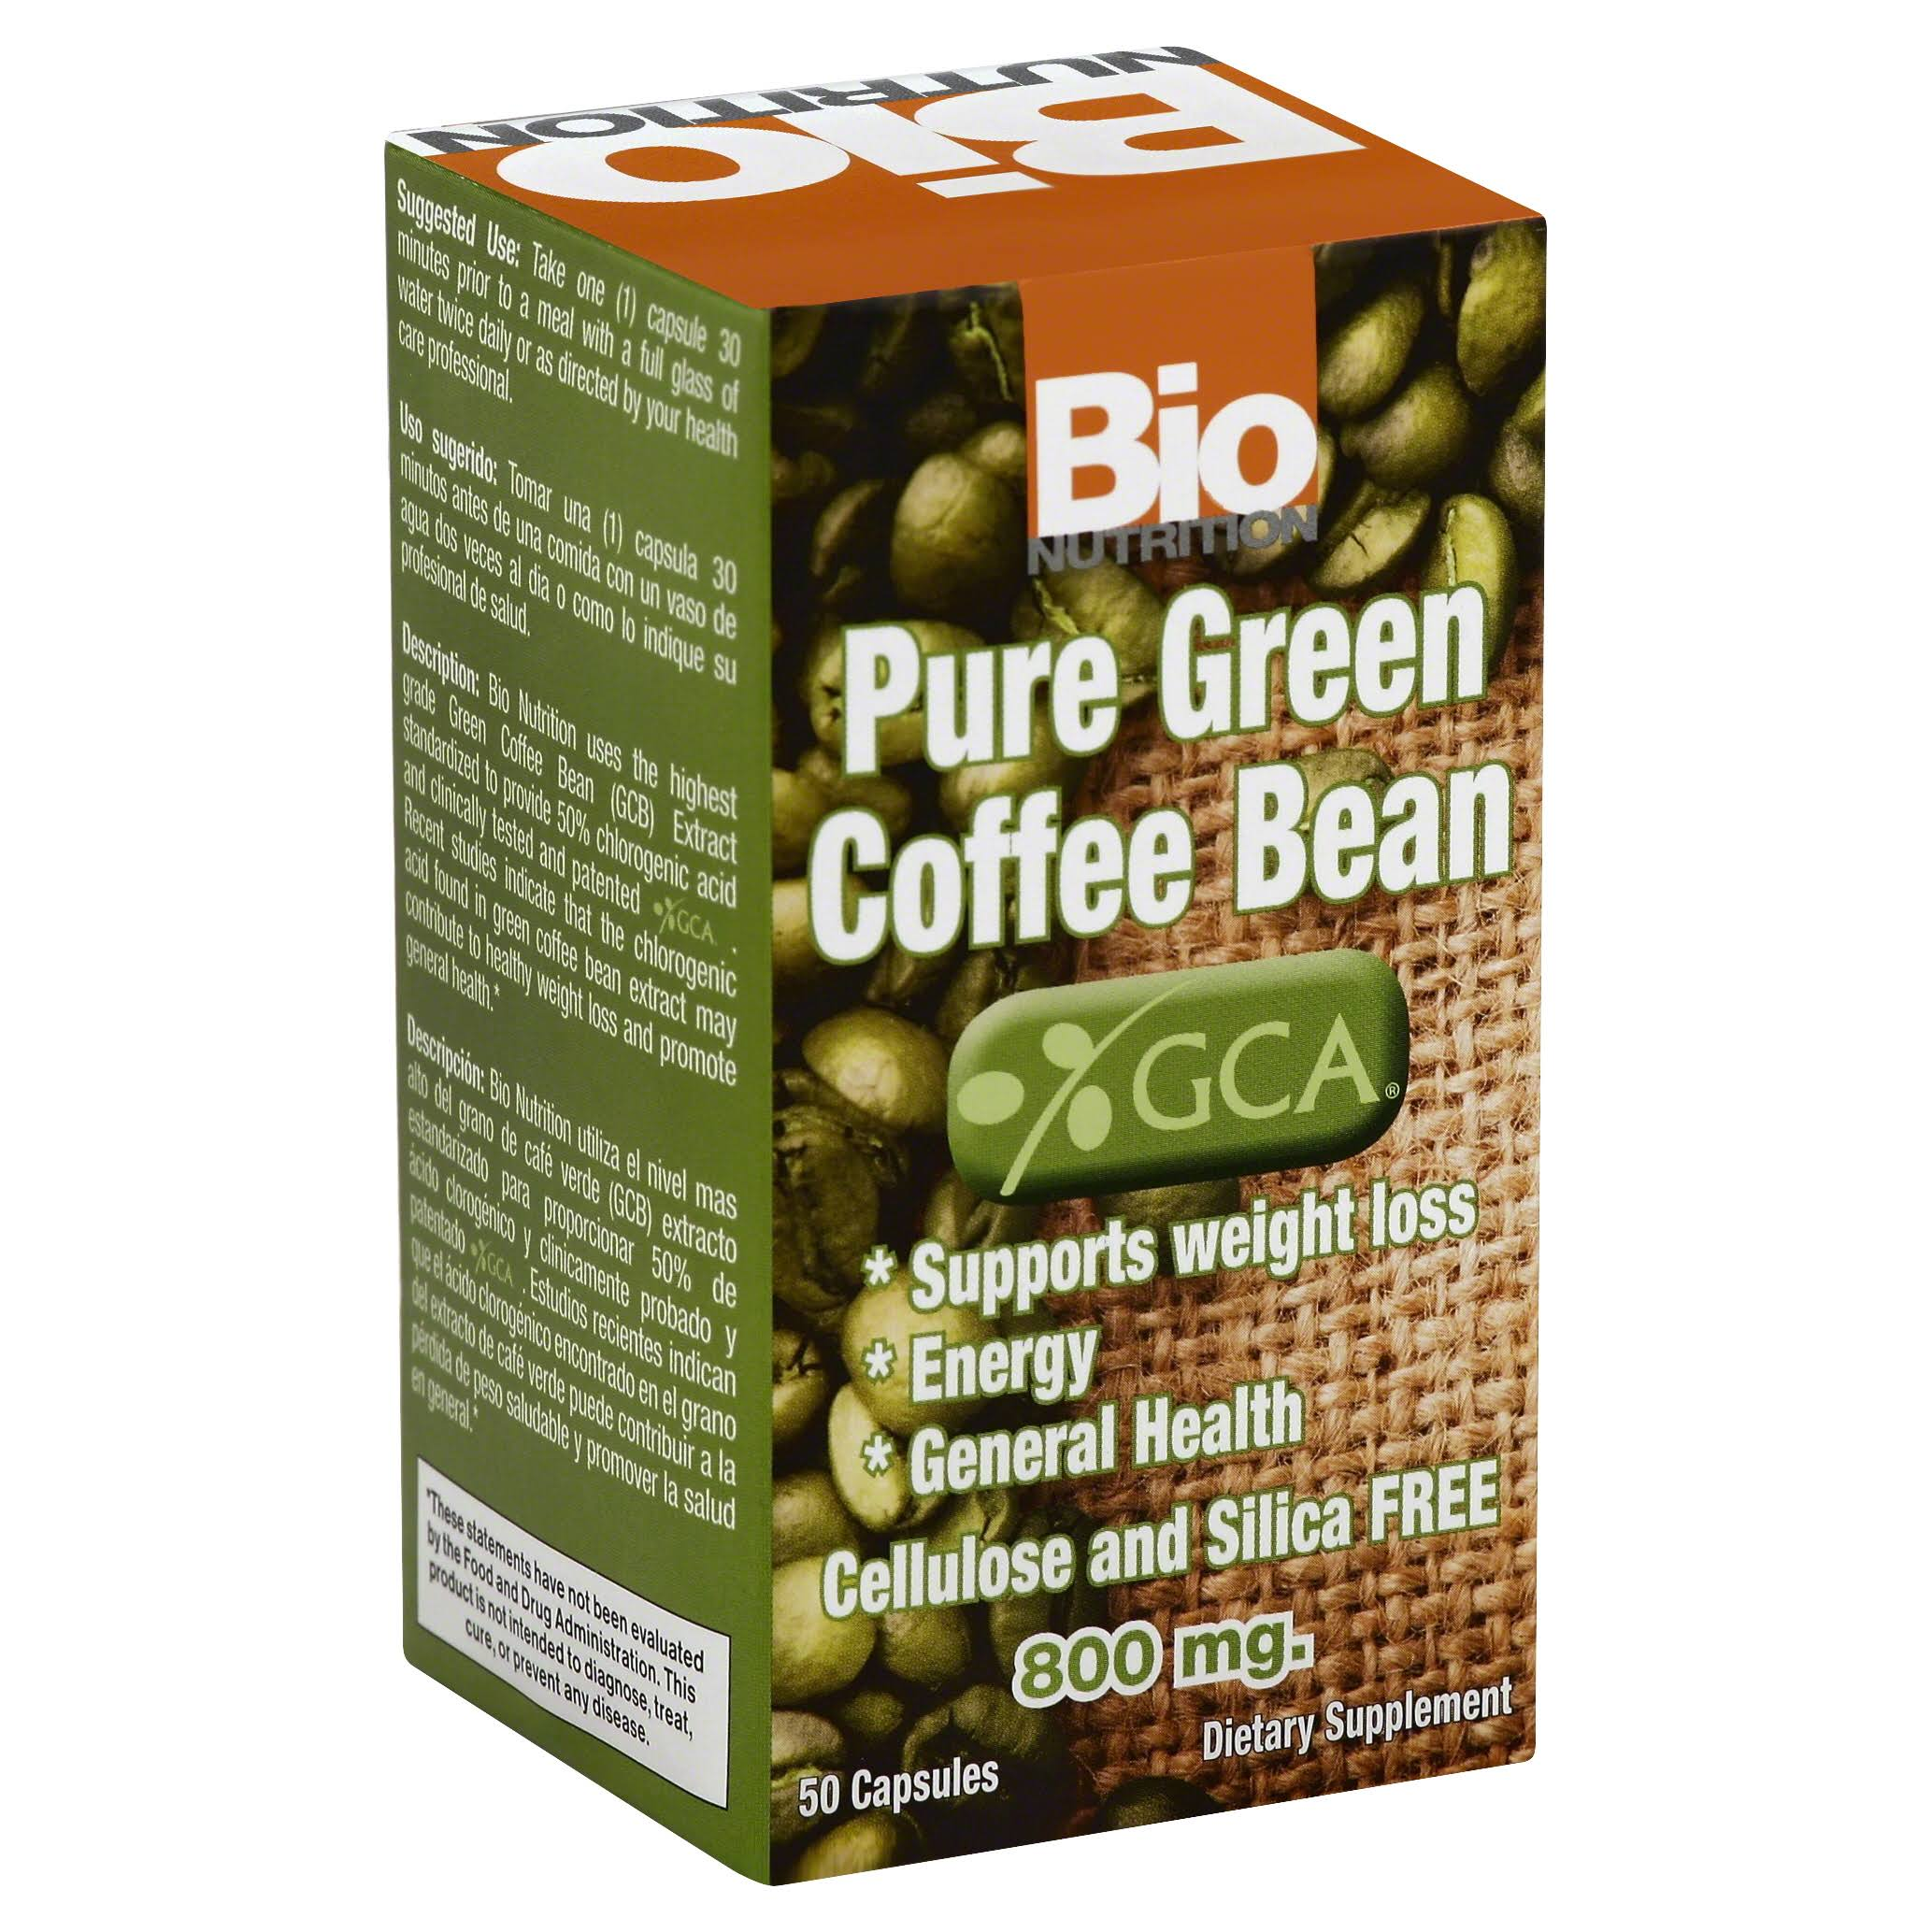 Bio Nutrition Pure Green Coffee Bean - 50 capsules